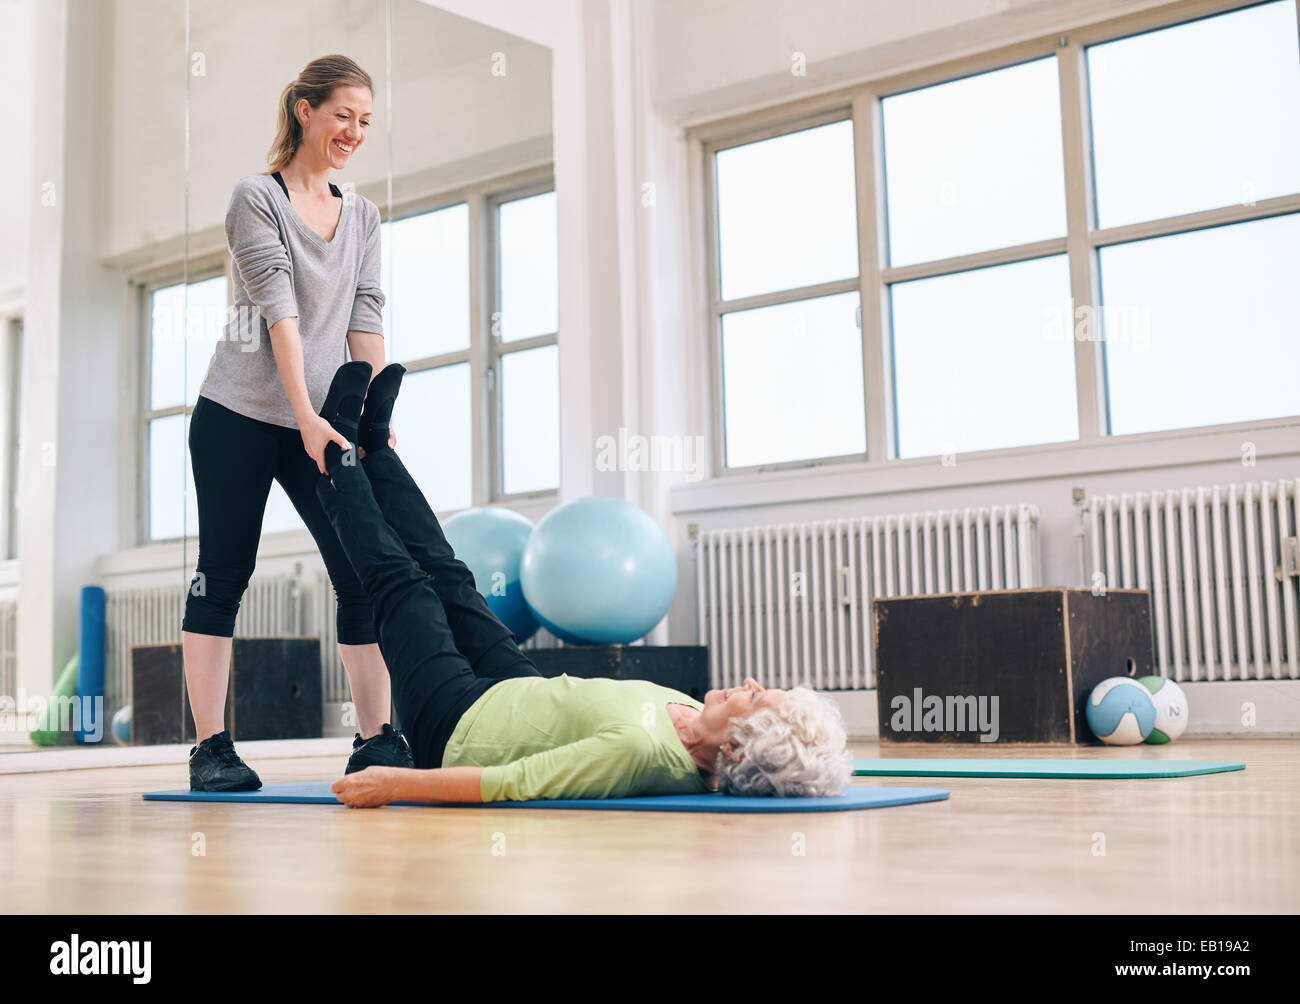 Personal trainer working with client on exercise mat at the gym. Instructor holding legs of senior woman exercising. - Stock Image